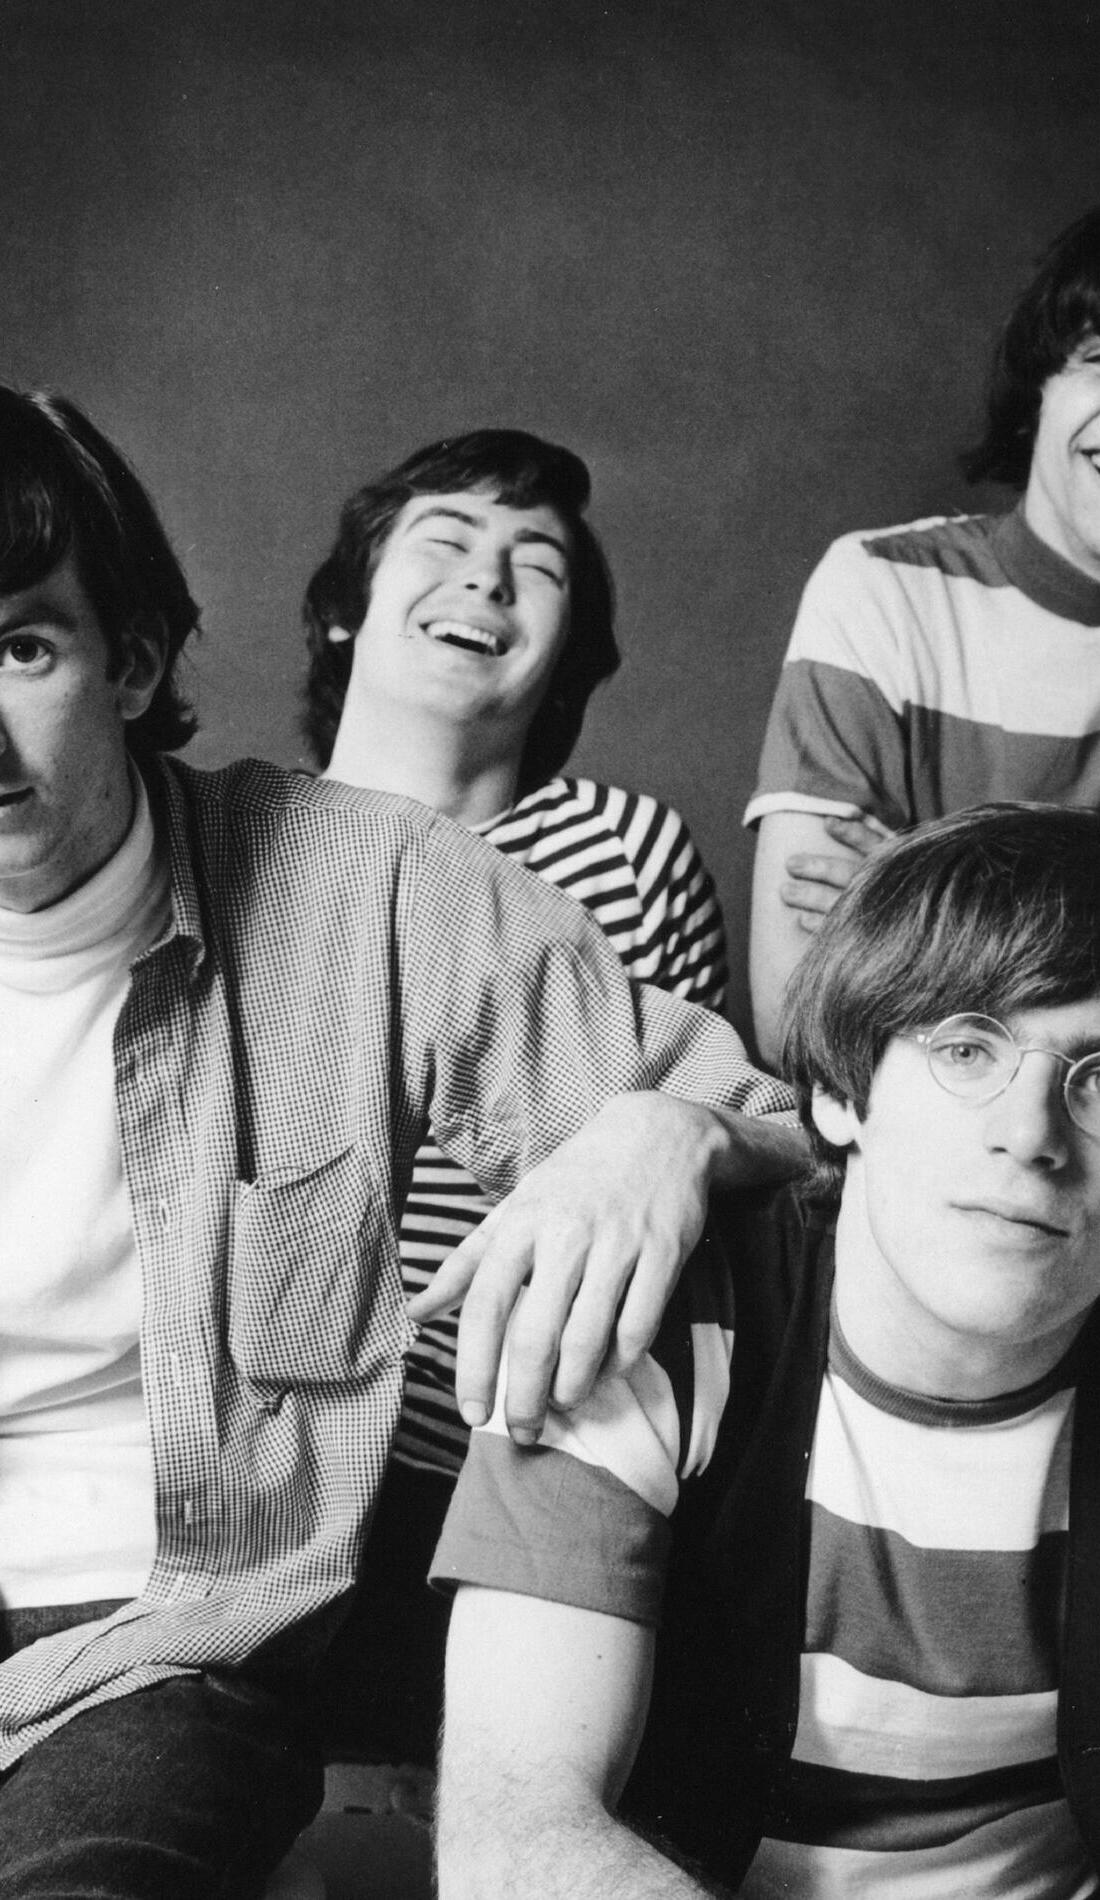 A The Lovin' Spoonful live event